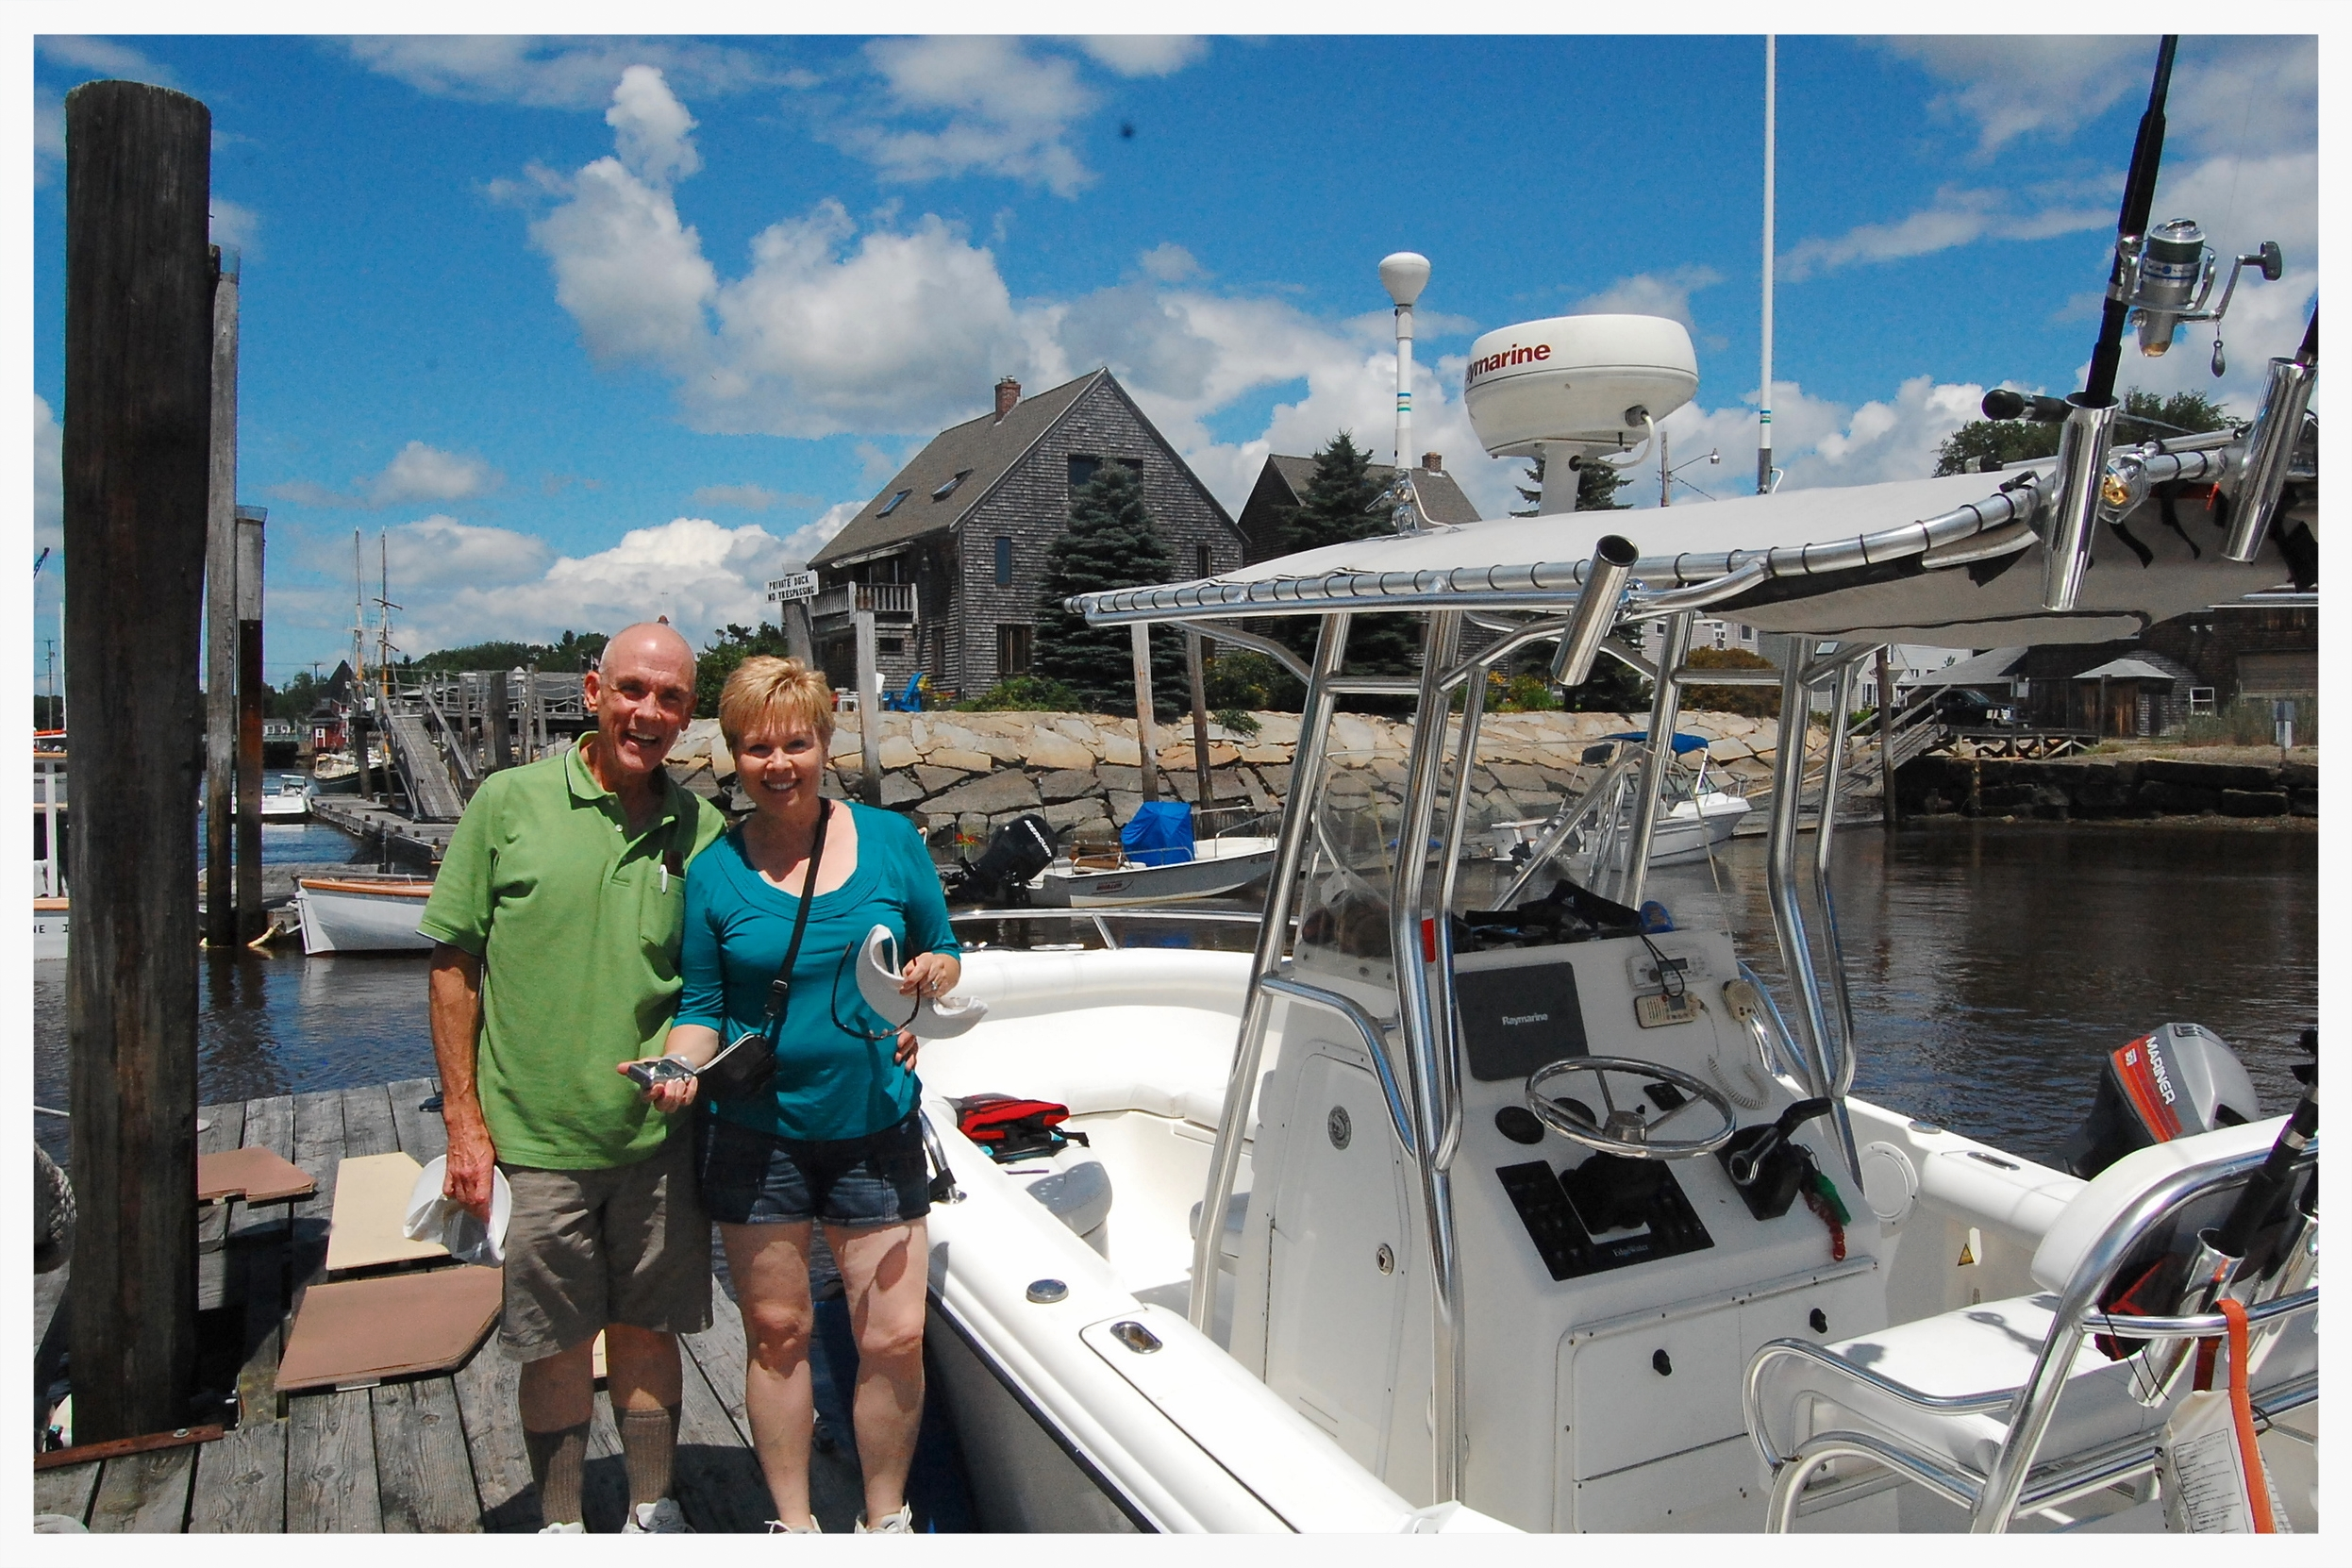 Scenic Private Cruises - Kennebunkport, Maine